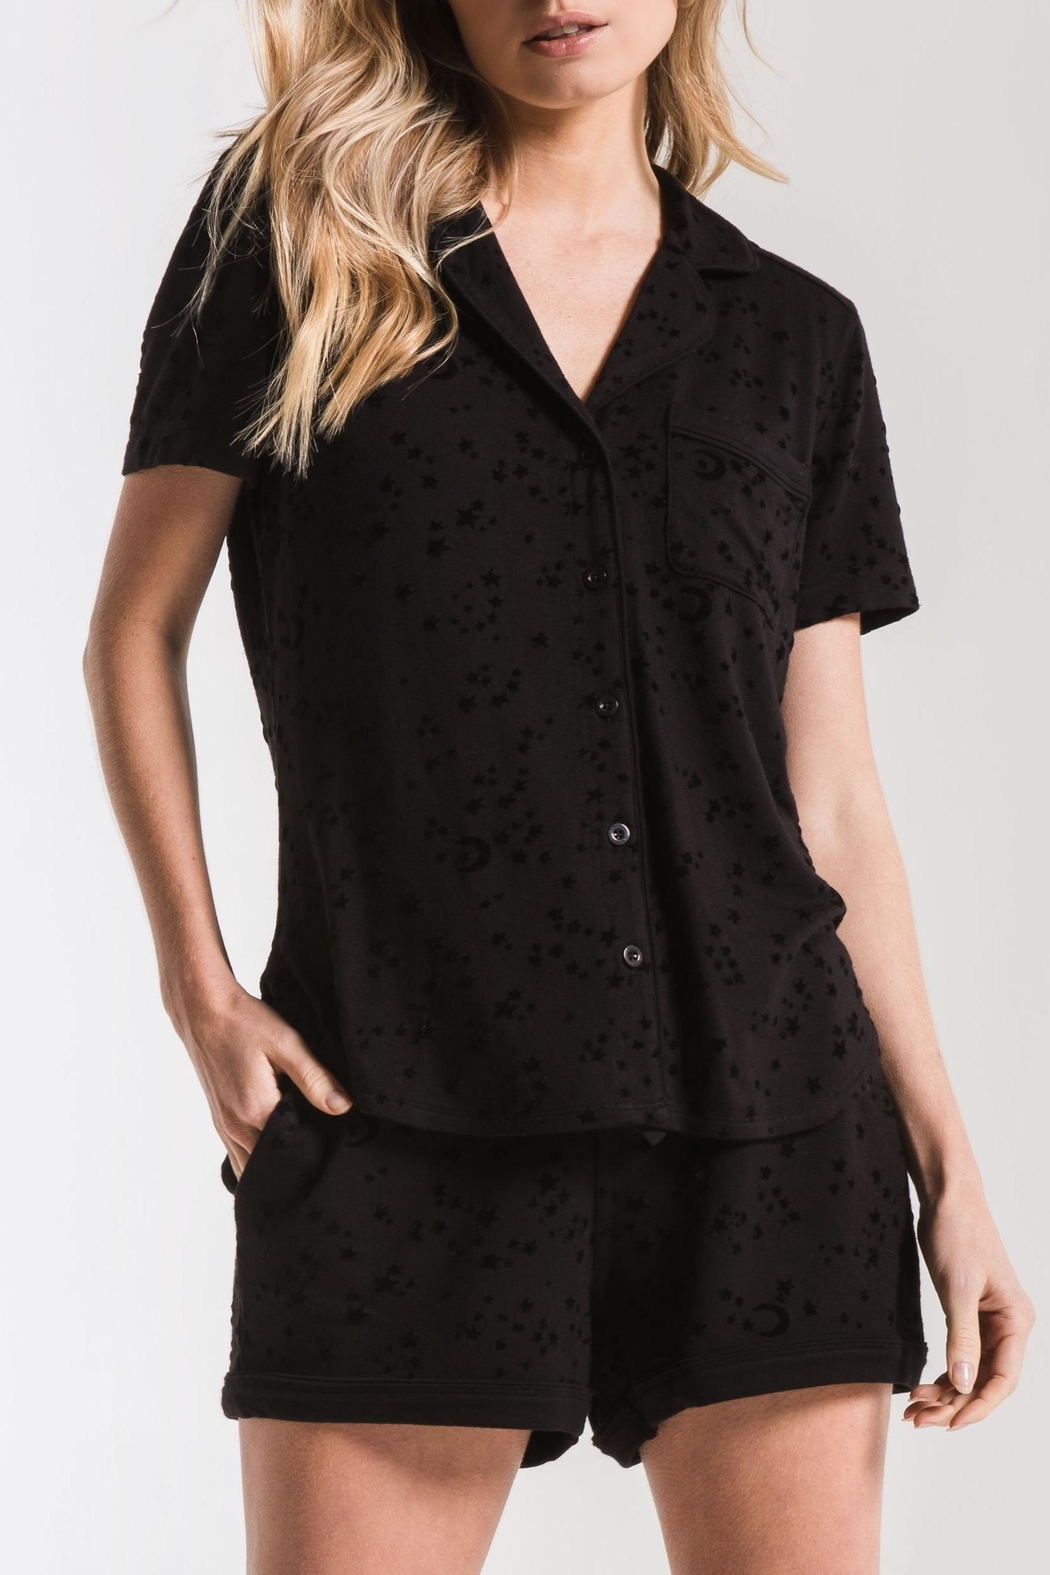 z supply Stars Pajama Shirt - Front Cropped Image